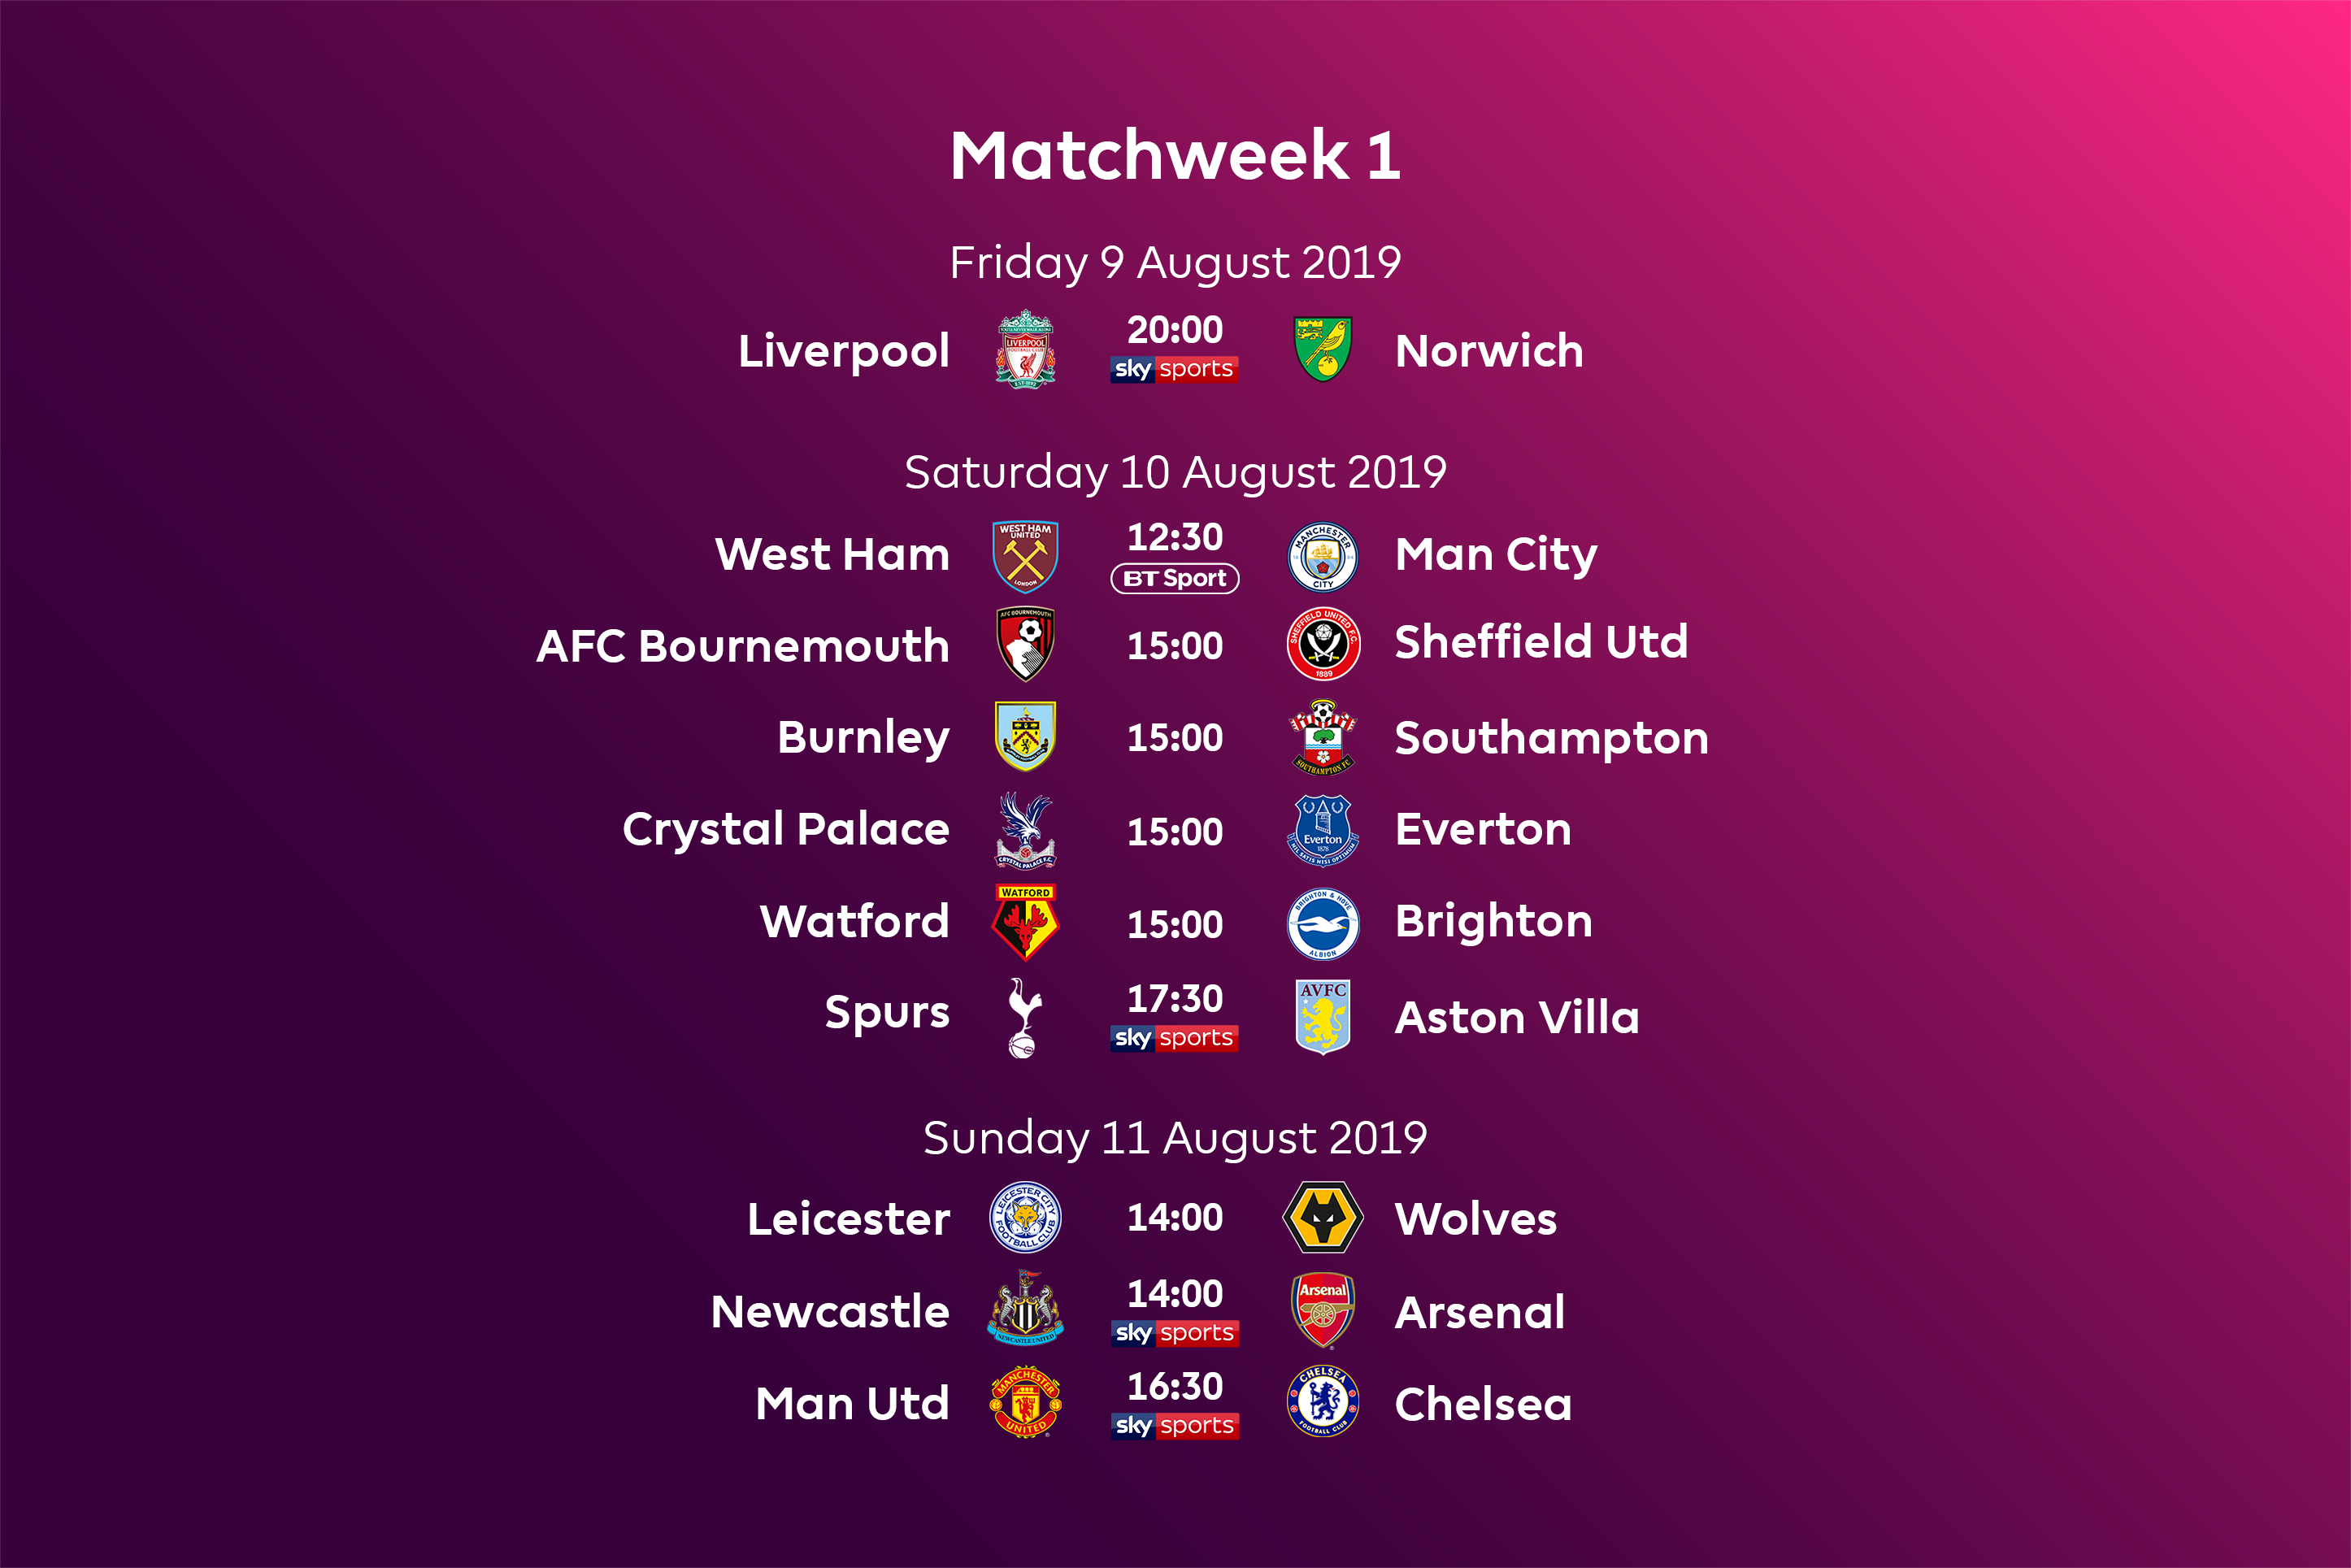 premier league 19/20 match